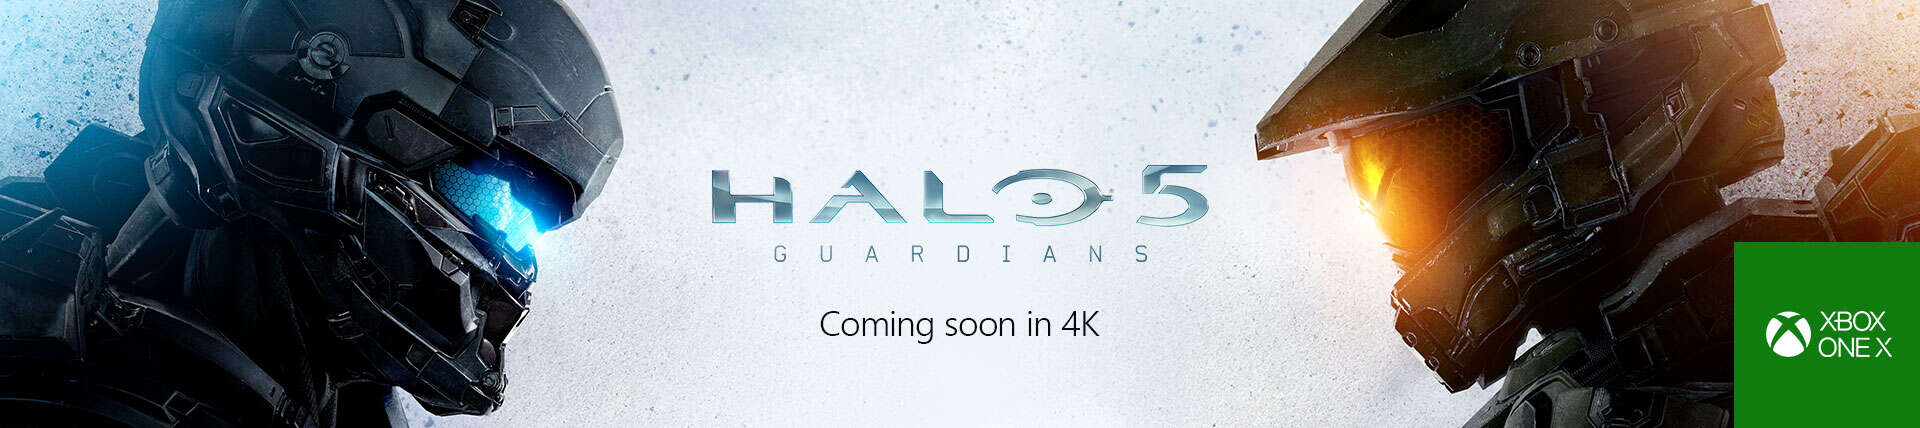 Halo summer celebration: 4k update for halo 5: guardians + backward compatibility for halo 3, 4 and more - onmsft. Com - july 6, 2017